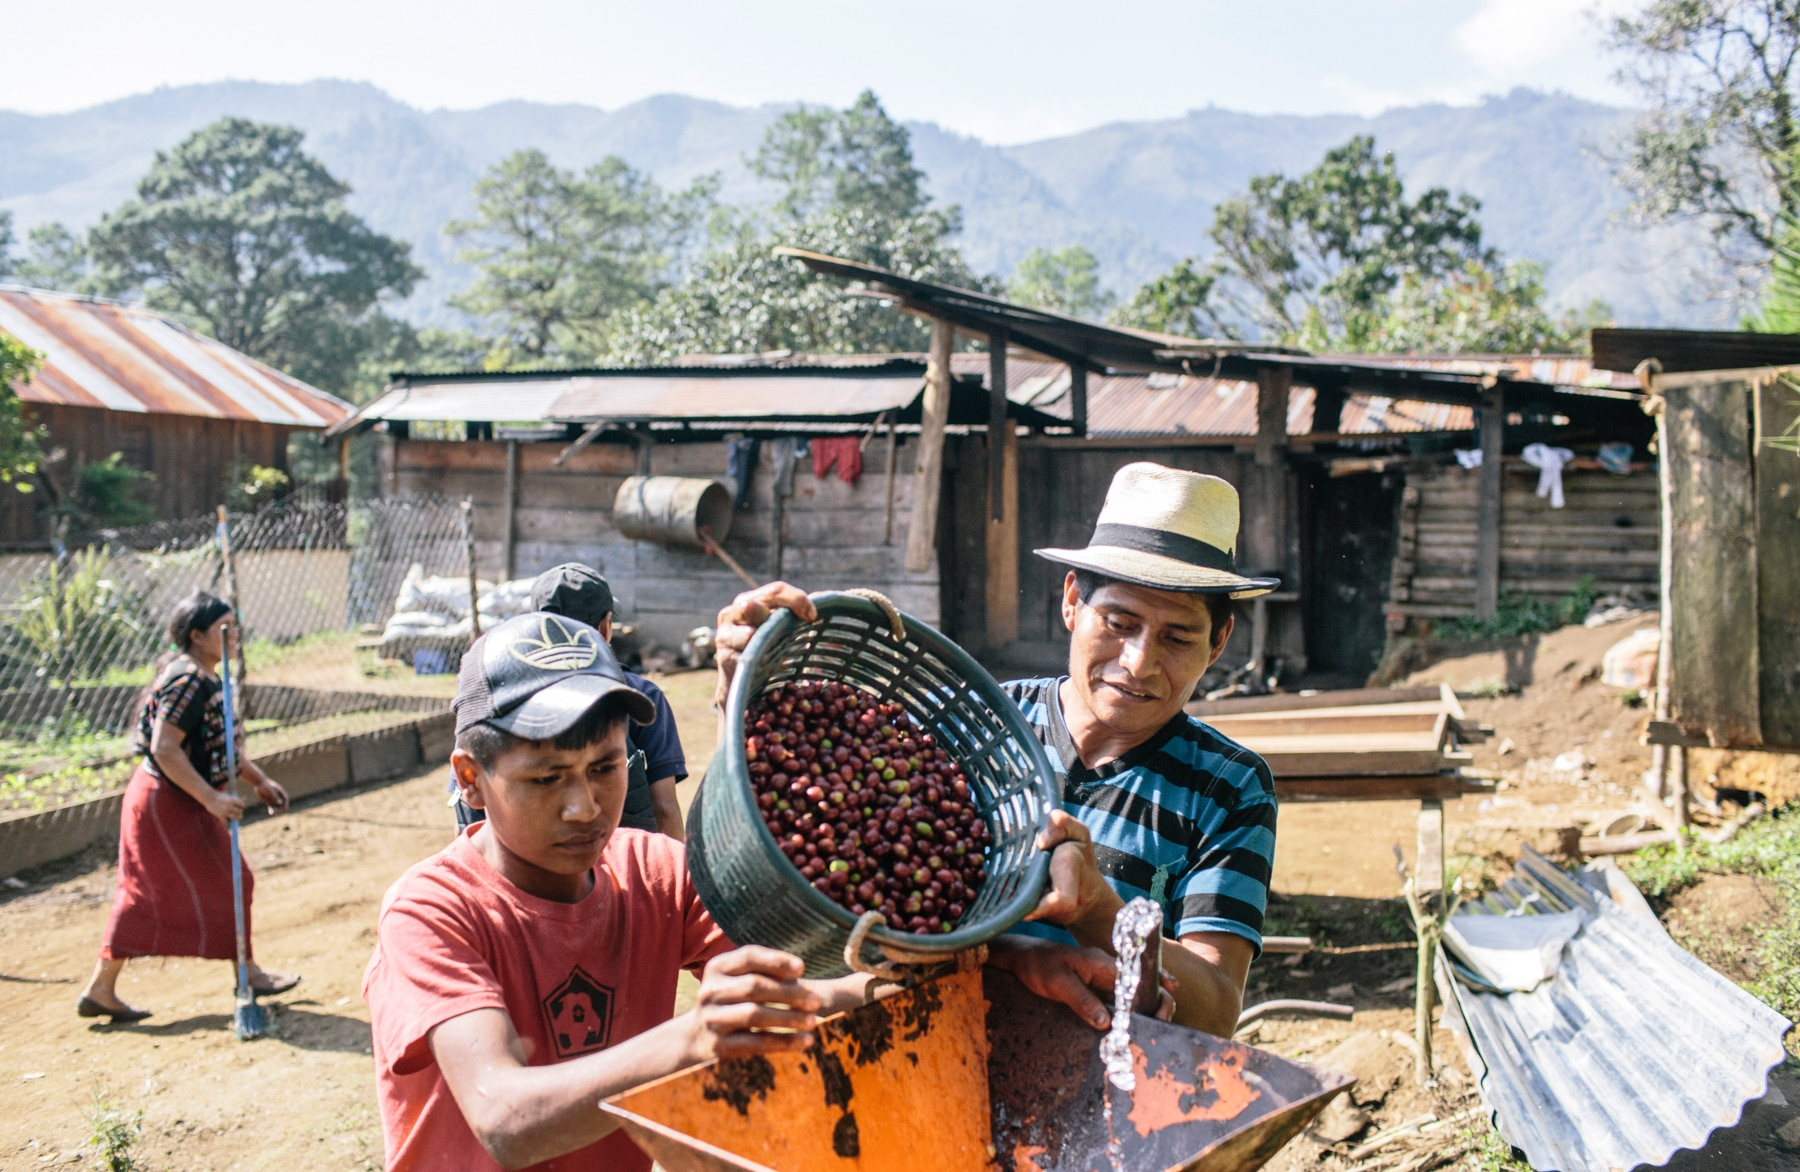 Two farmers pouring coffee beans into a machine (Greg Kahn for USAID)